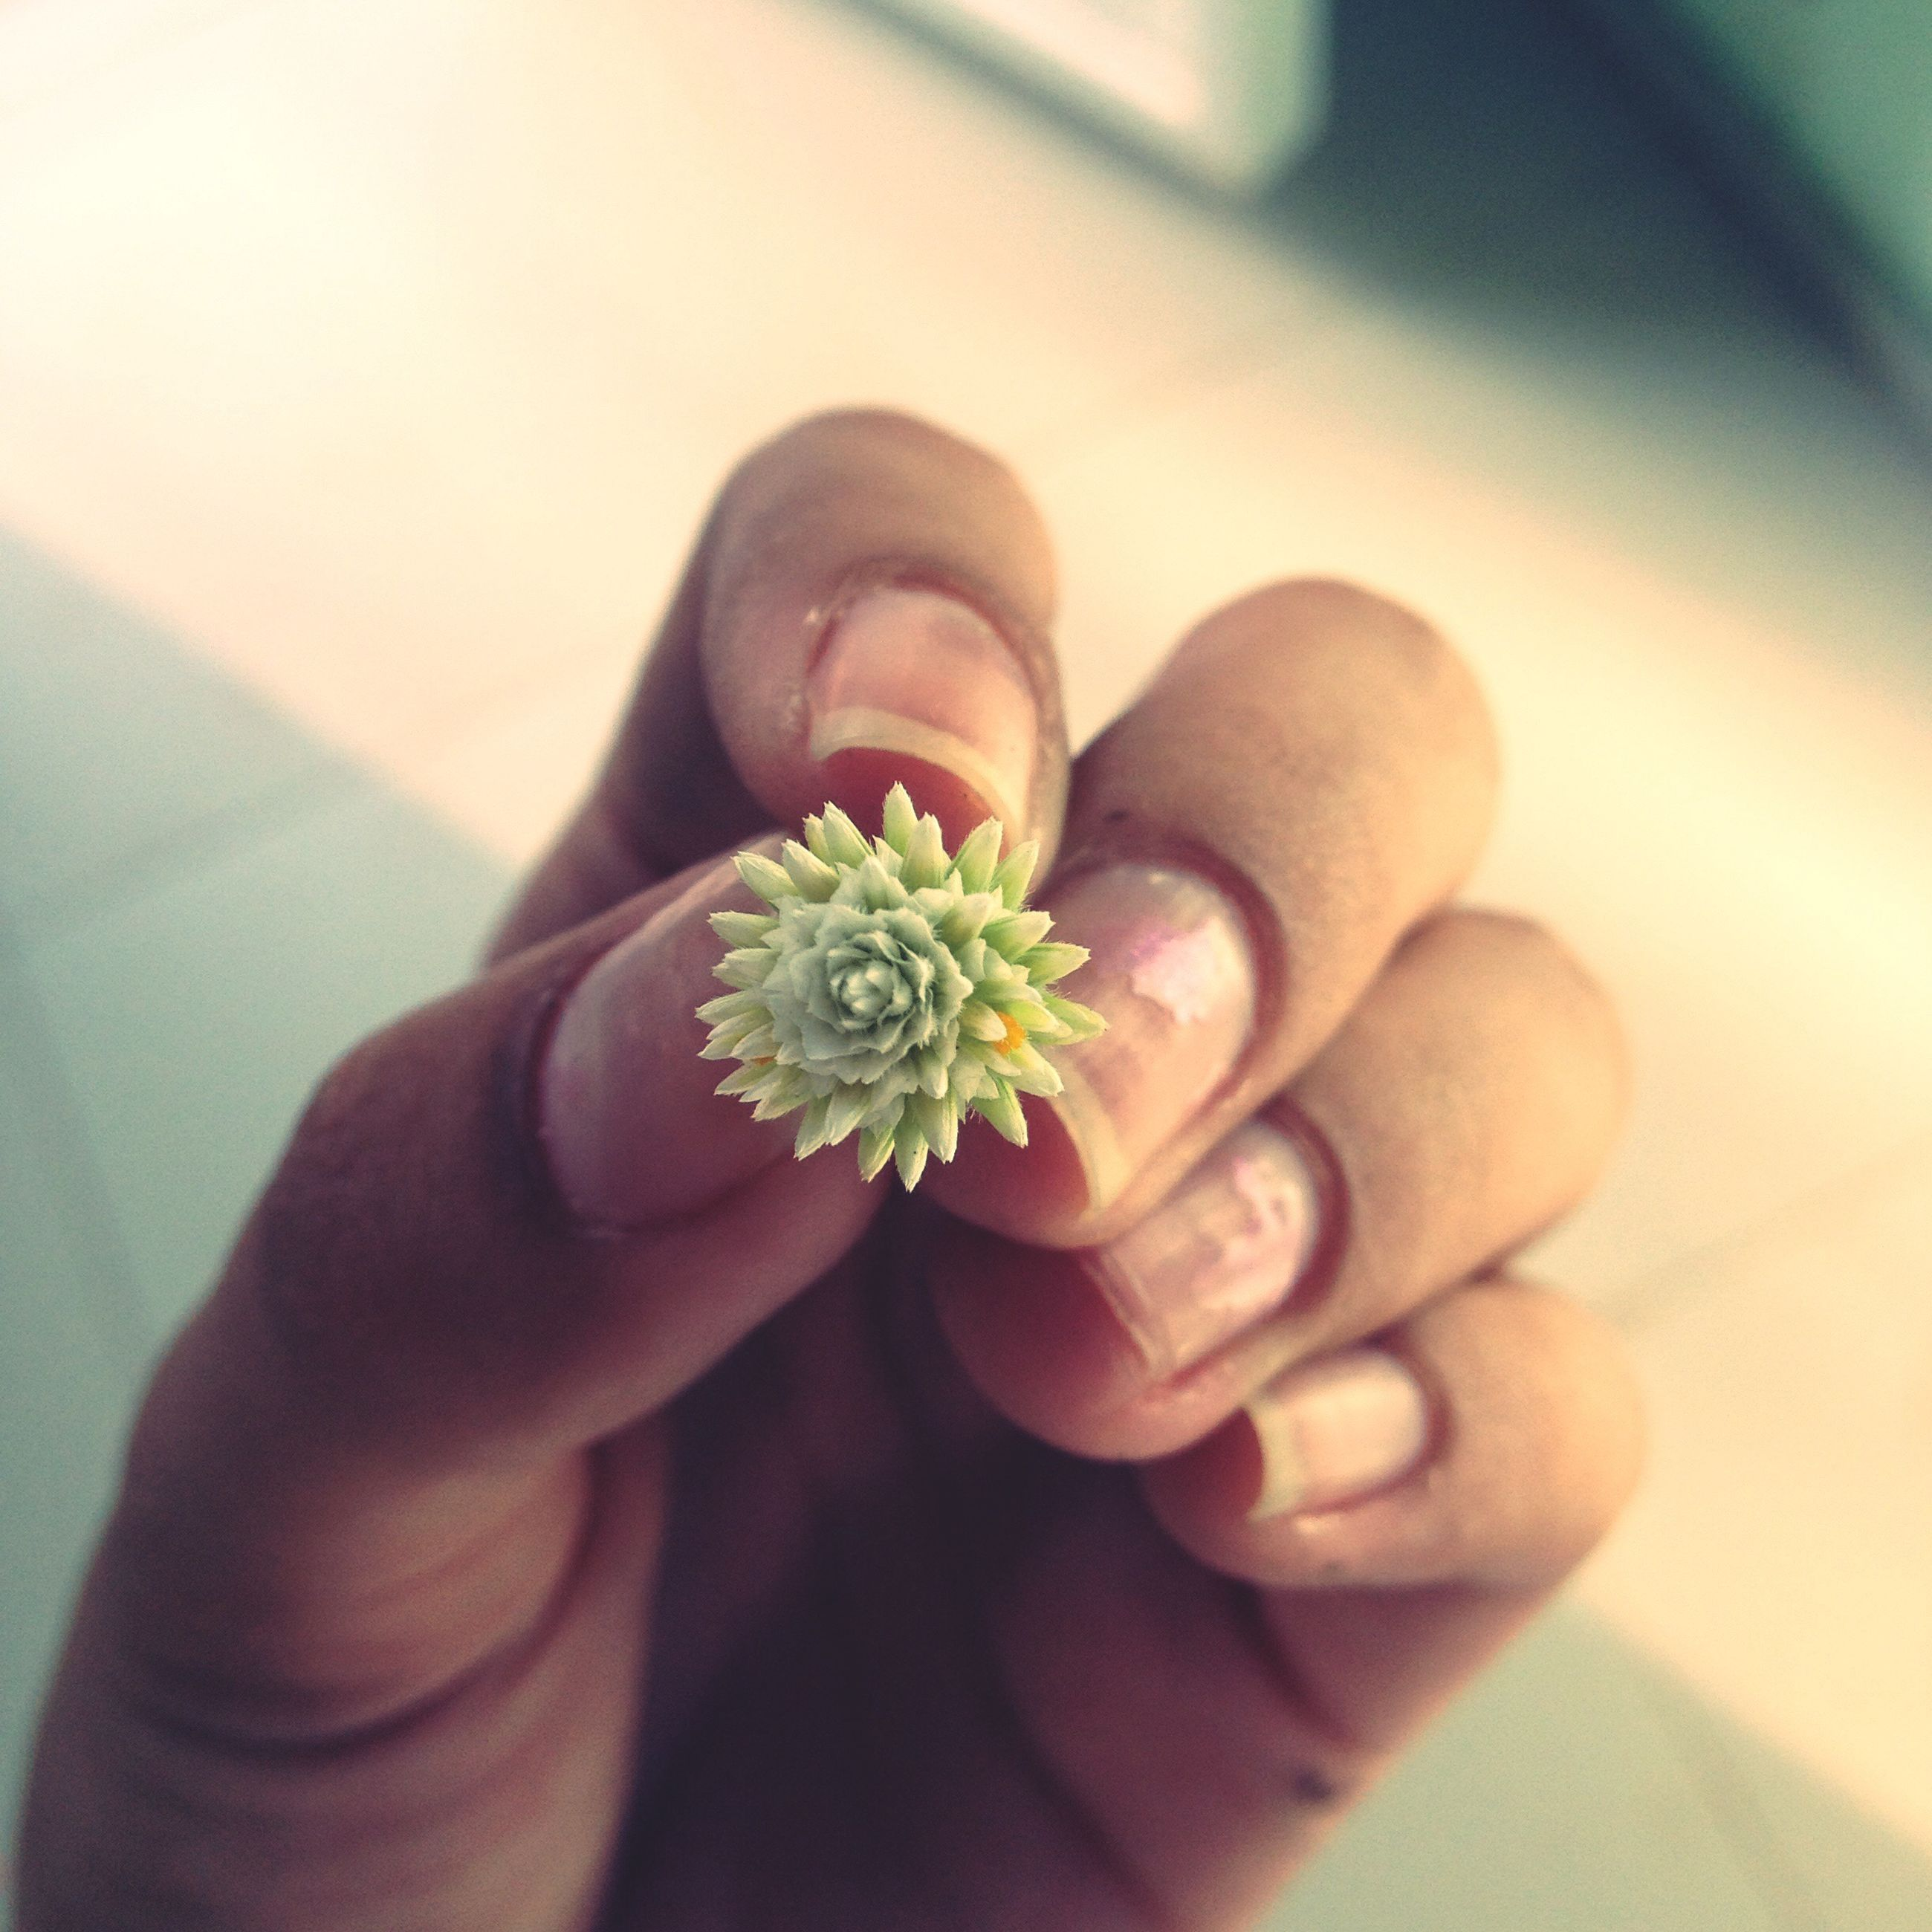 person, holding, flower, part of, human finger, freshness, cropped, personal perspective, fragility, close-up, unrecognizable person, petal, flower head, lifestyles, focus on foreground, leisure activity, selective focus, nature, beauty in nature